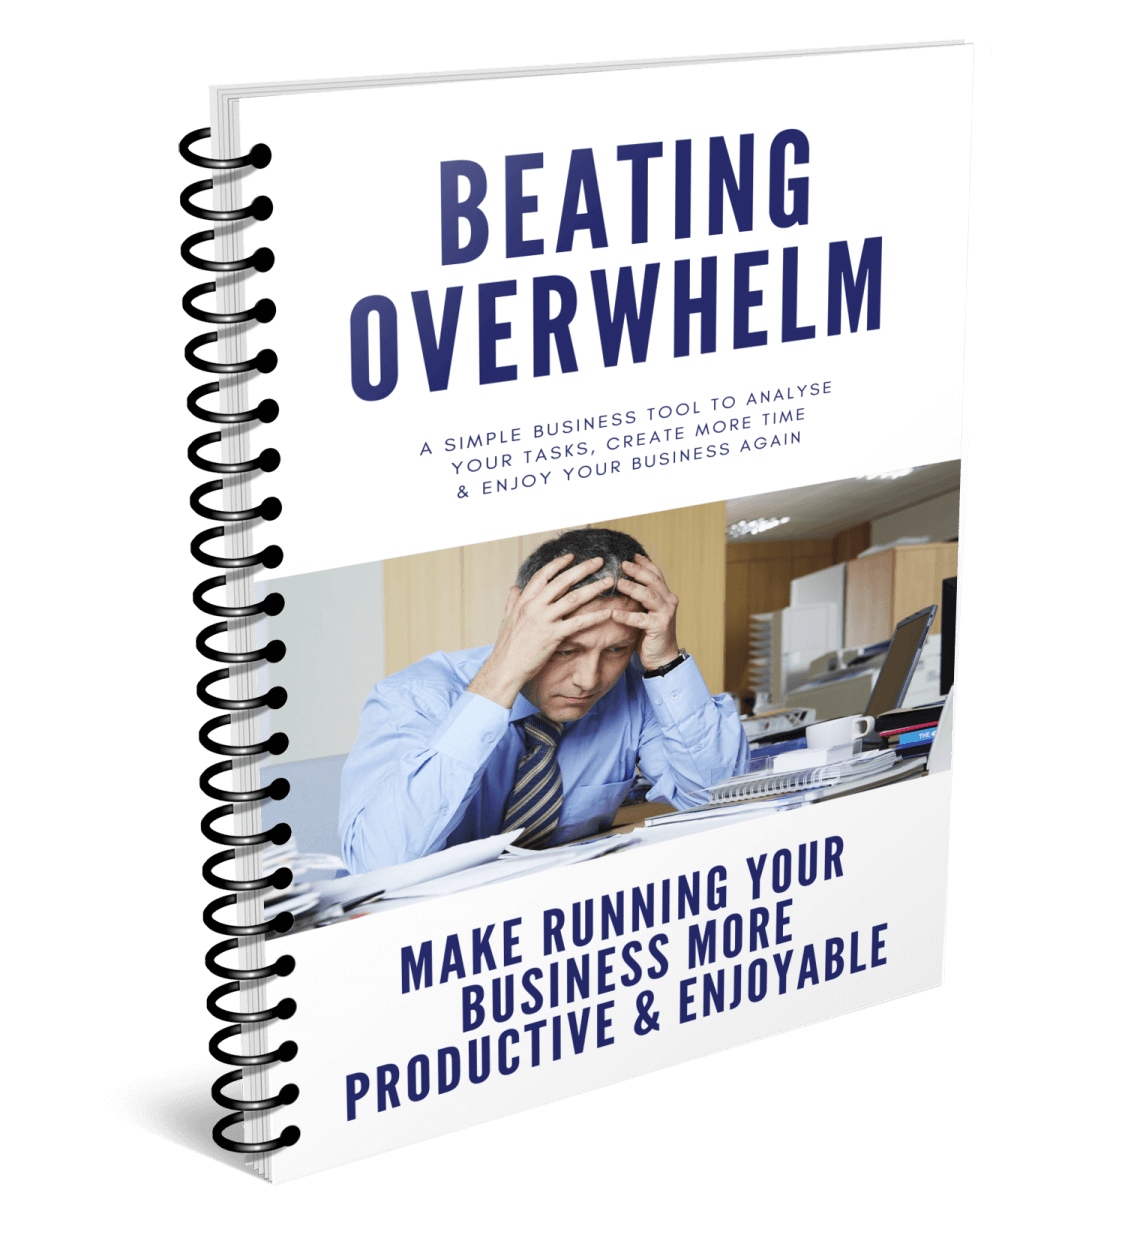 Beating Overwhelm Free Business Tool Cover